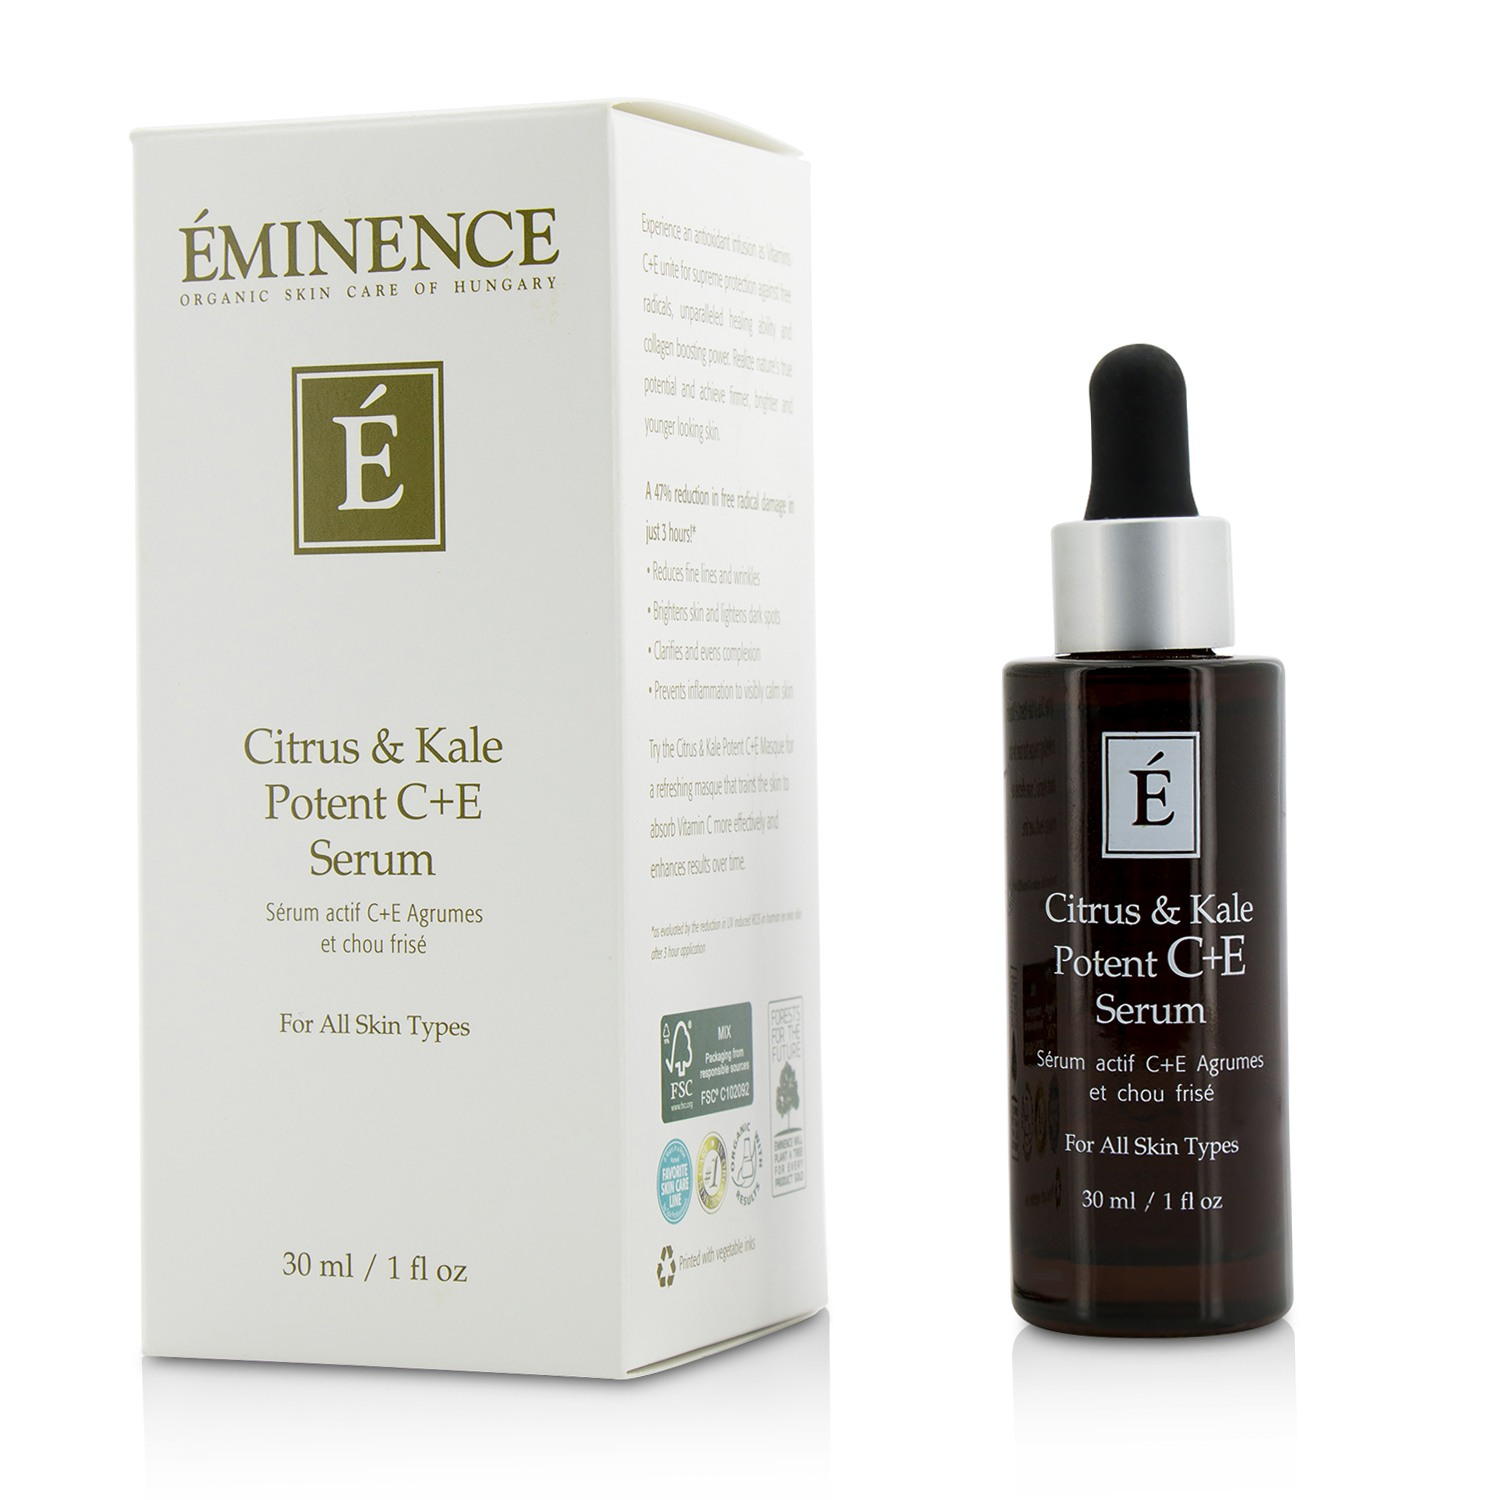 Citrus & Kale Potent C+E Serum - For All Skin Types  30ml/1oz